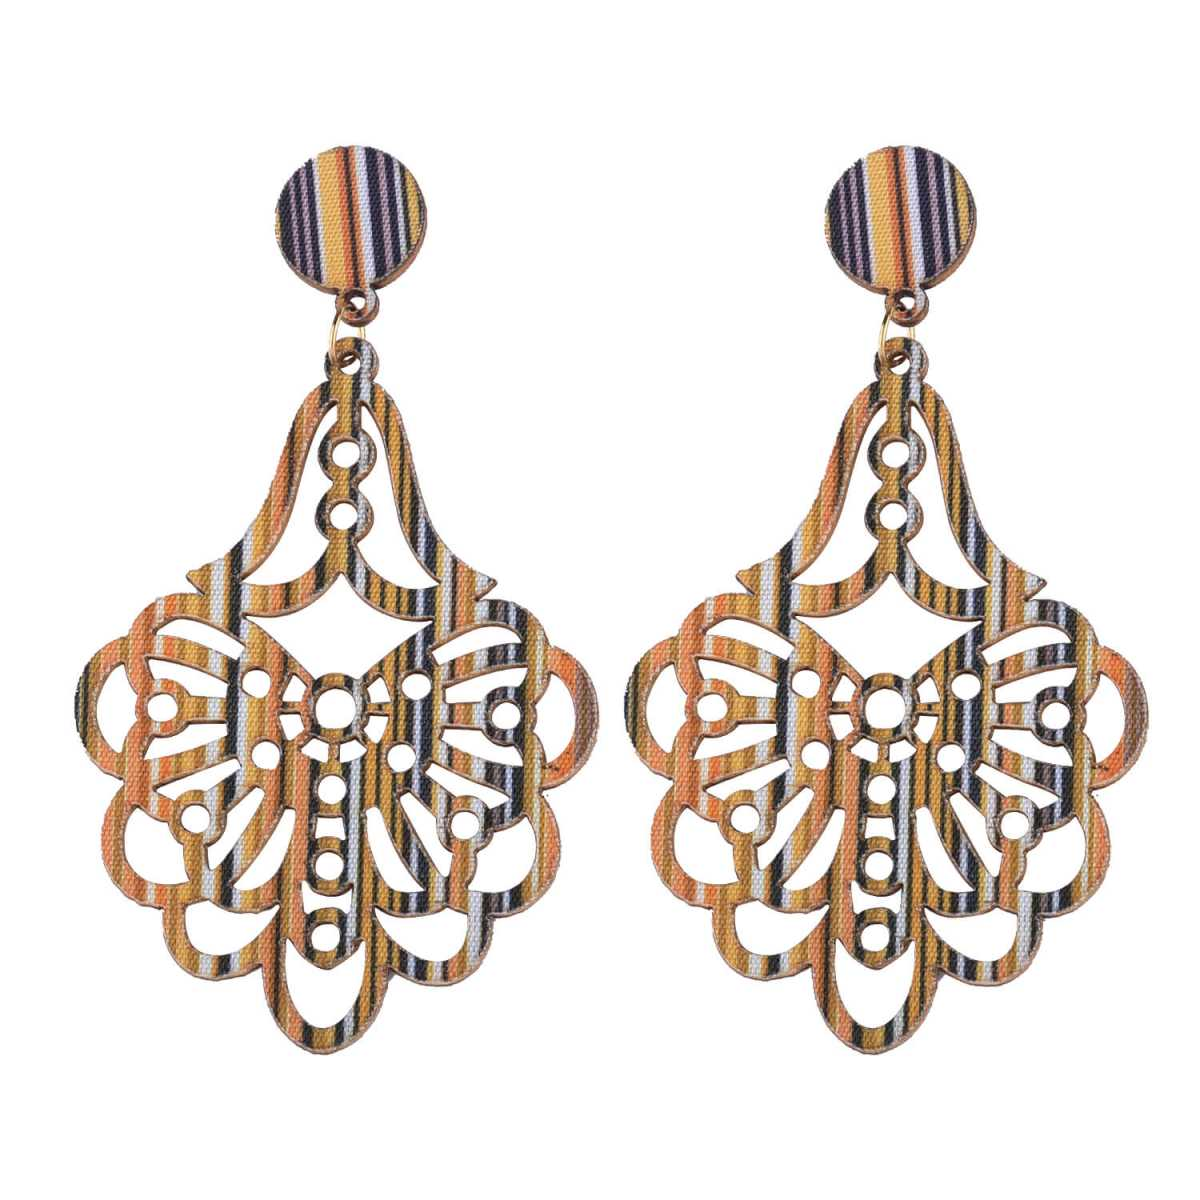 SILVER SHINE Attractive  Ethnic  Wooden Light Weight Earrings for Girls and Women.